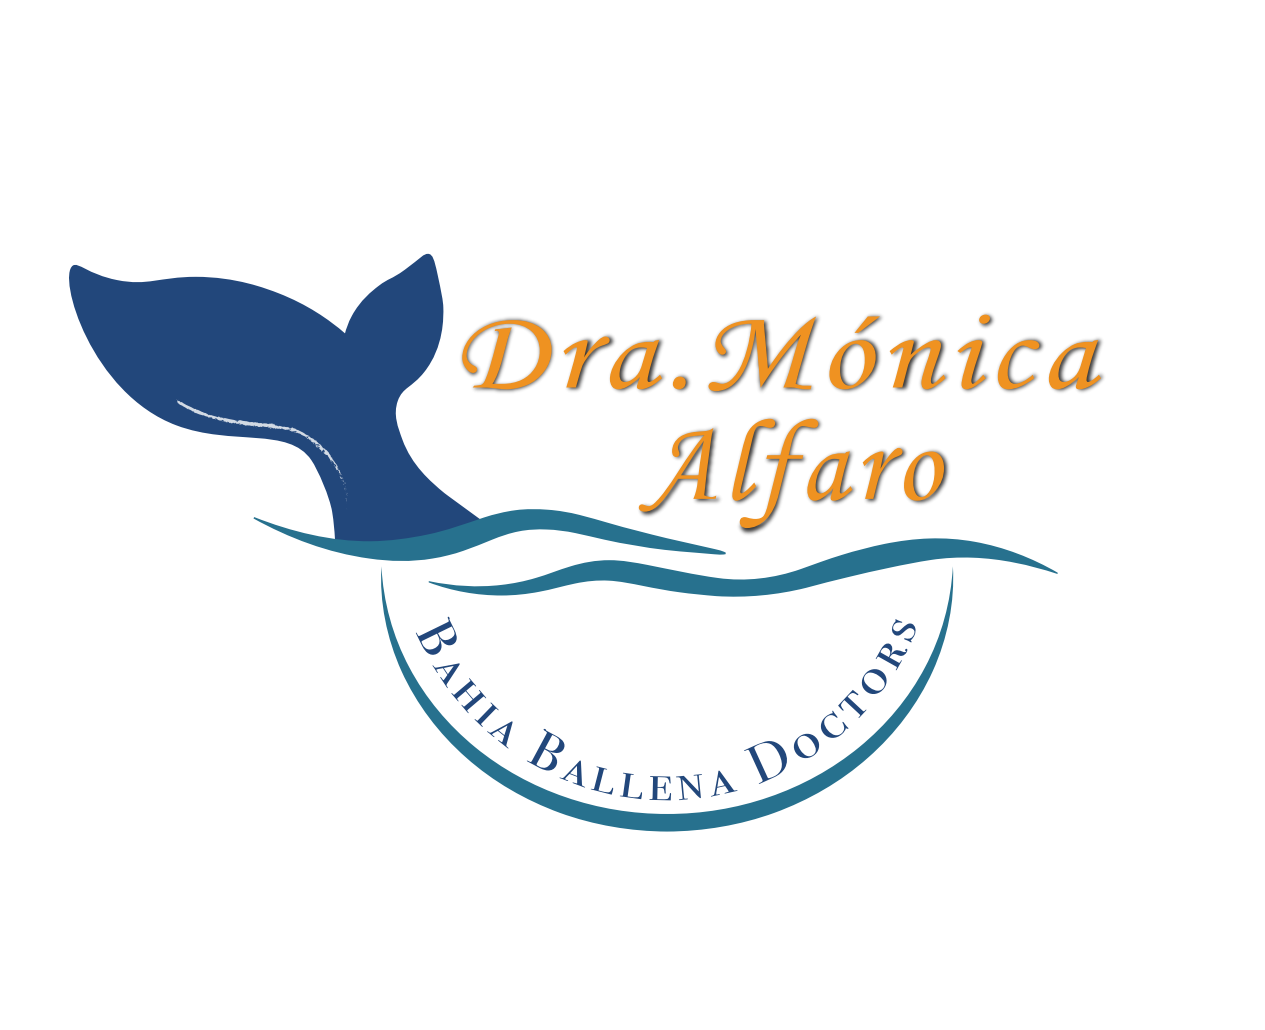 Professional Medical and Aesthetics Services